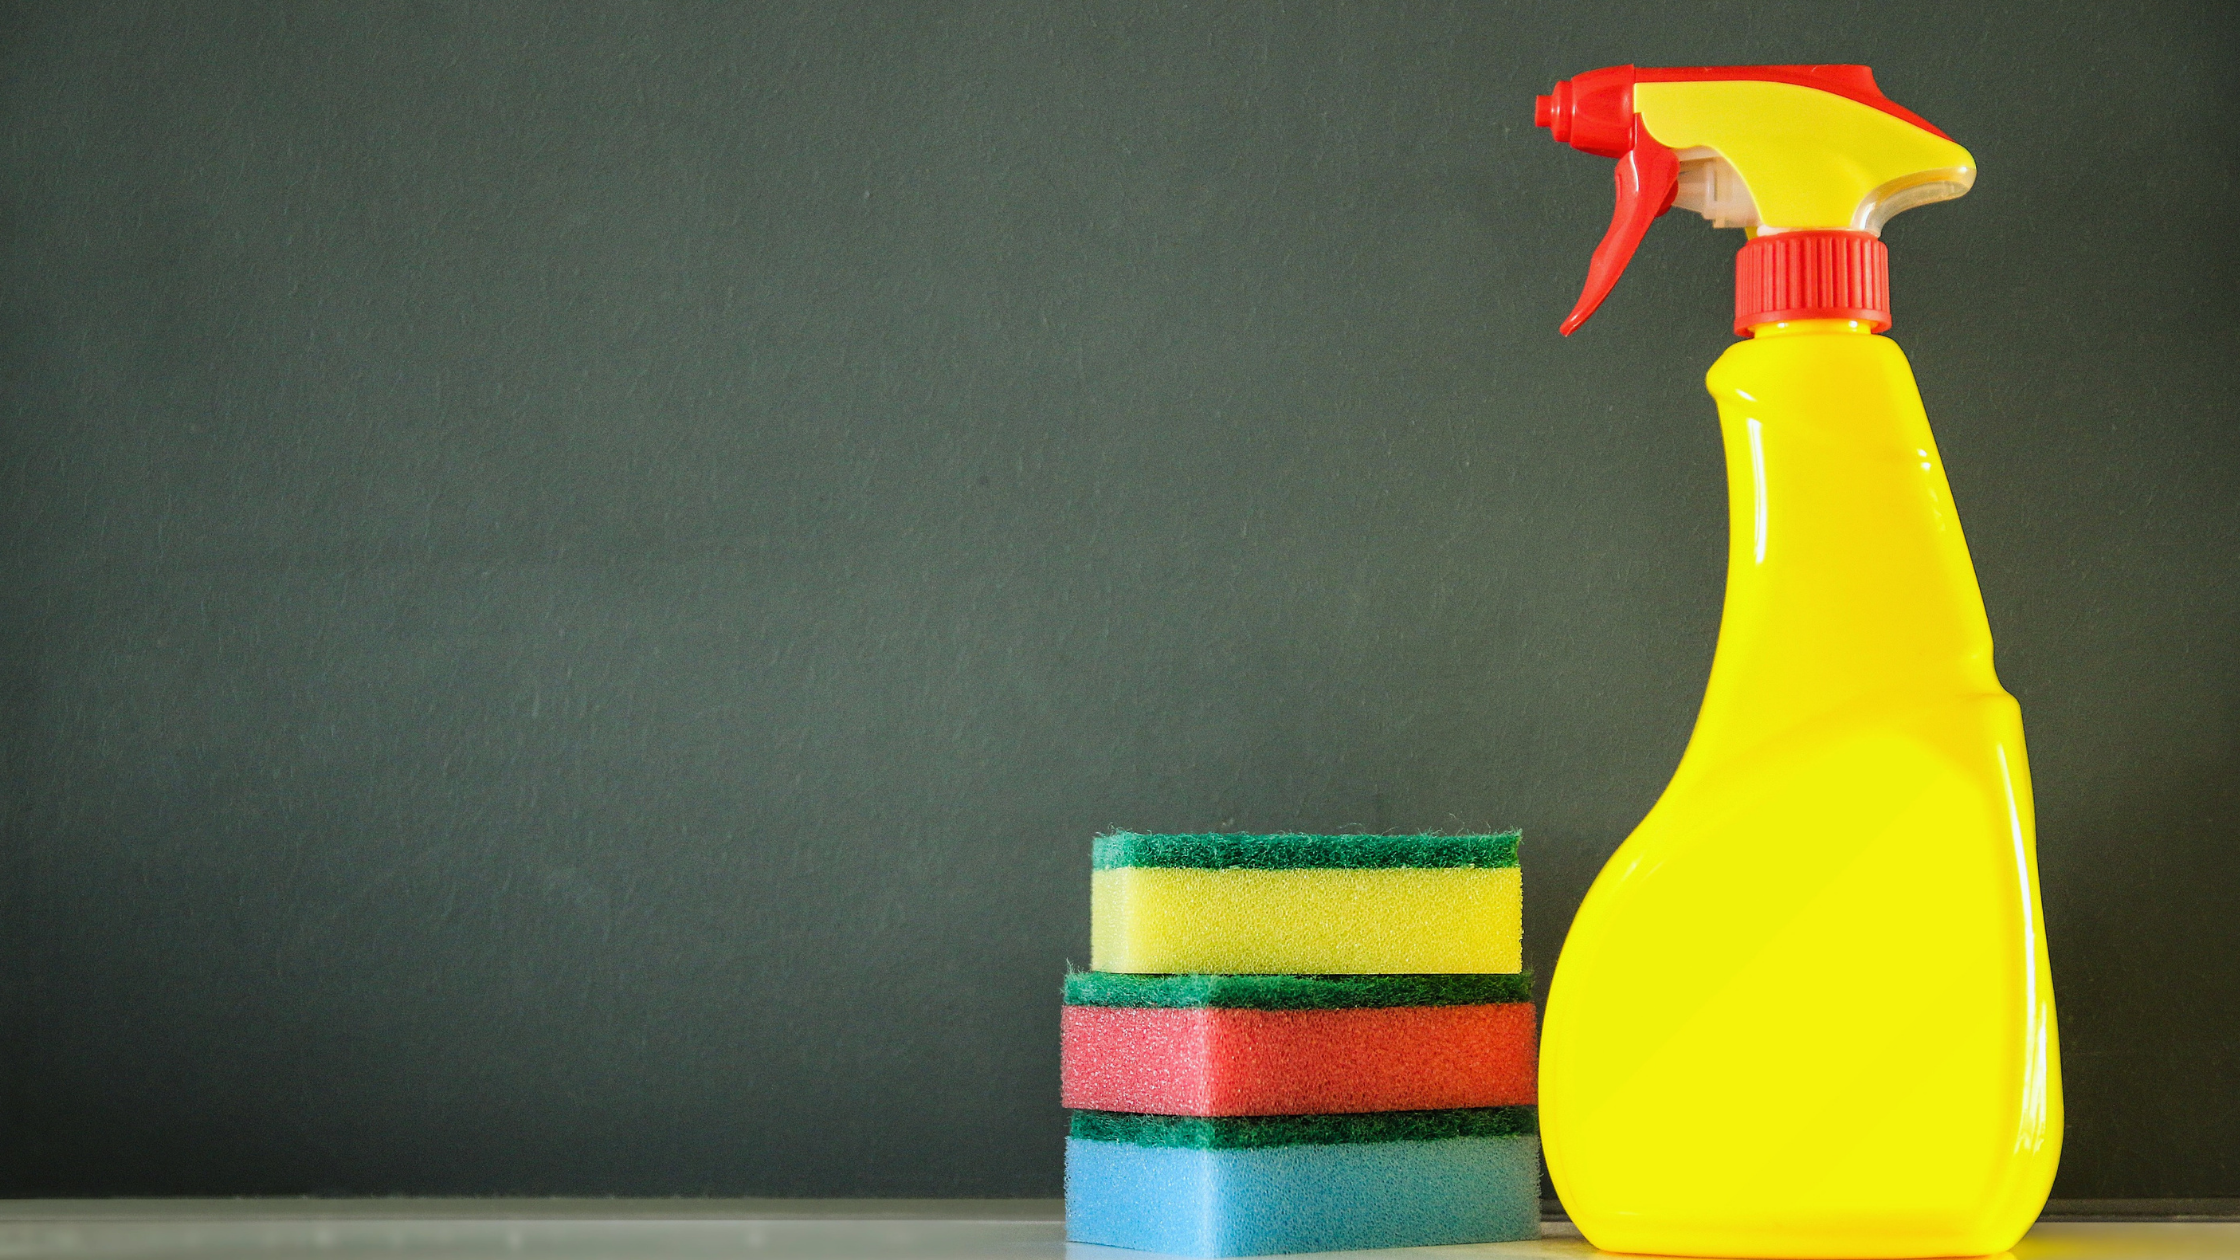 The Top Household Supplies Brands Advertise a Squeaky Clean Home